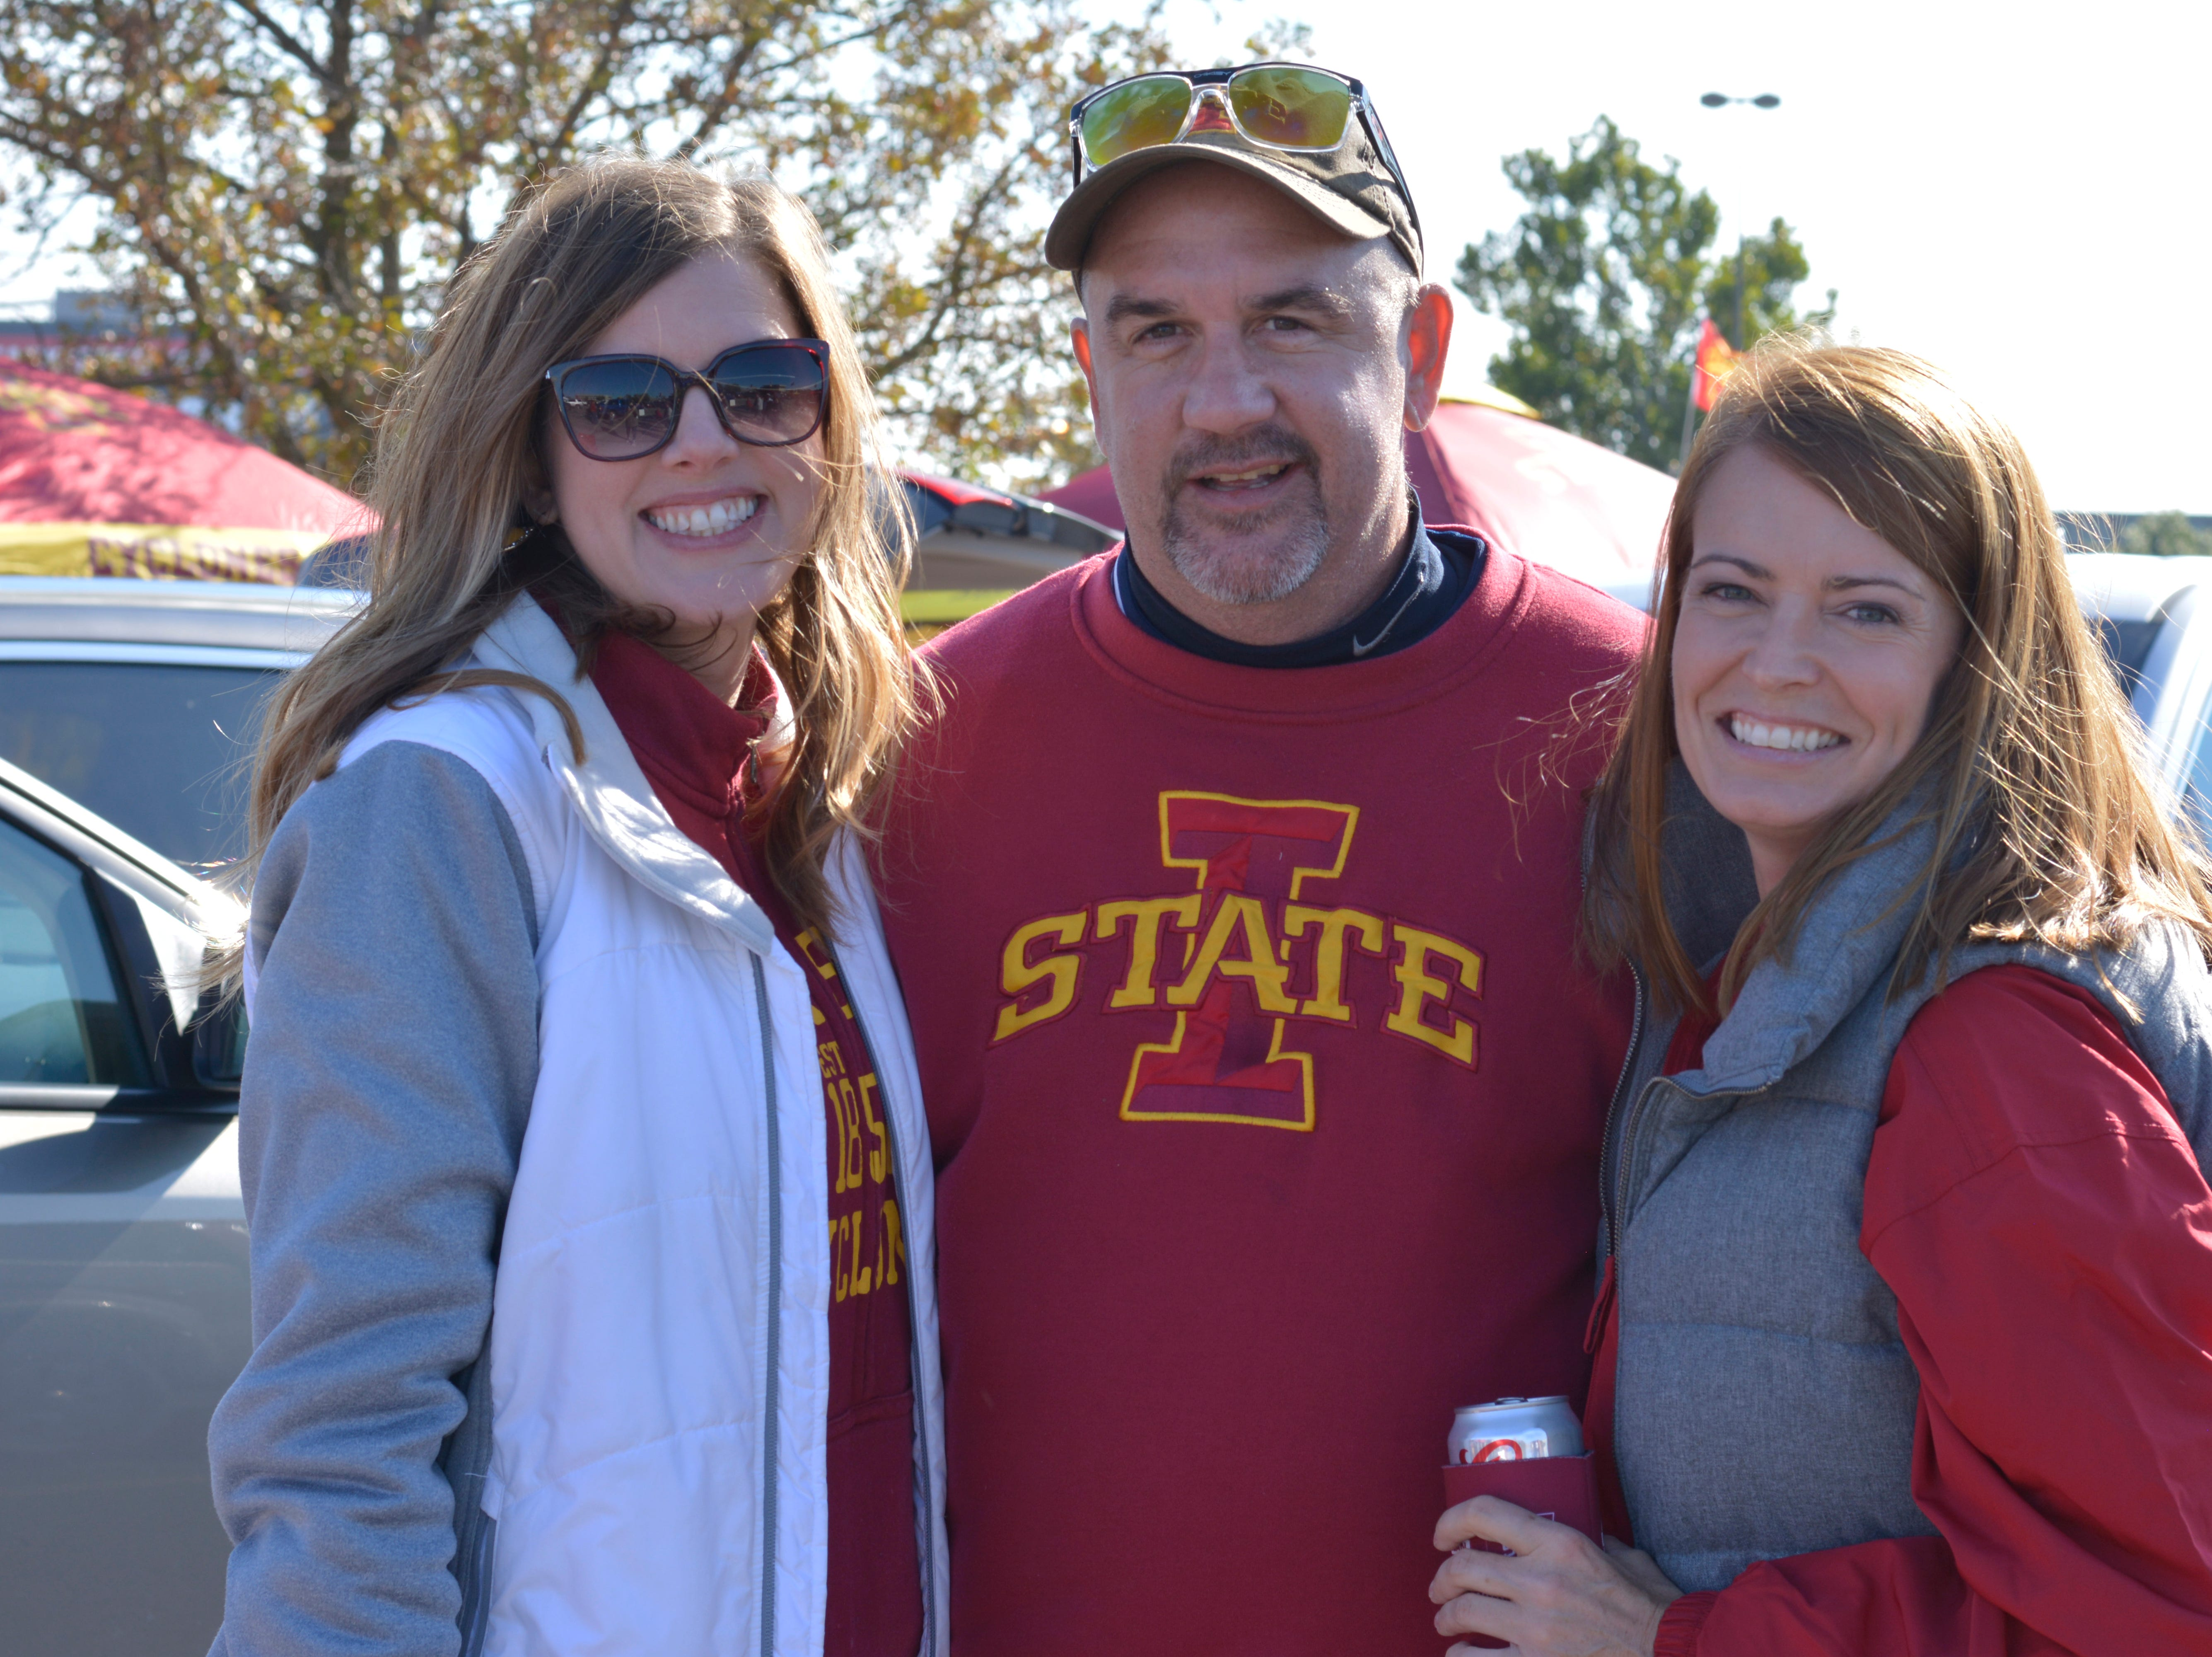 Jamie Mueller (left), Joe DiBlasi (middle) and Shannon Harden (right) before the Iowa State University football game against West Virginia in Ames on Oct. 13.